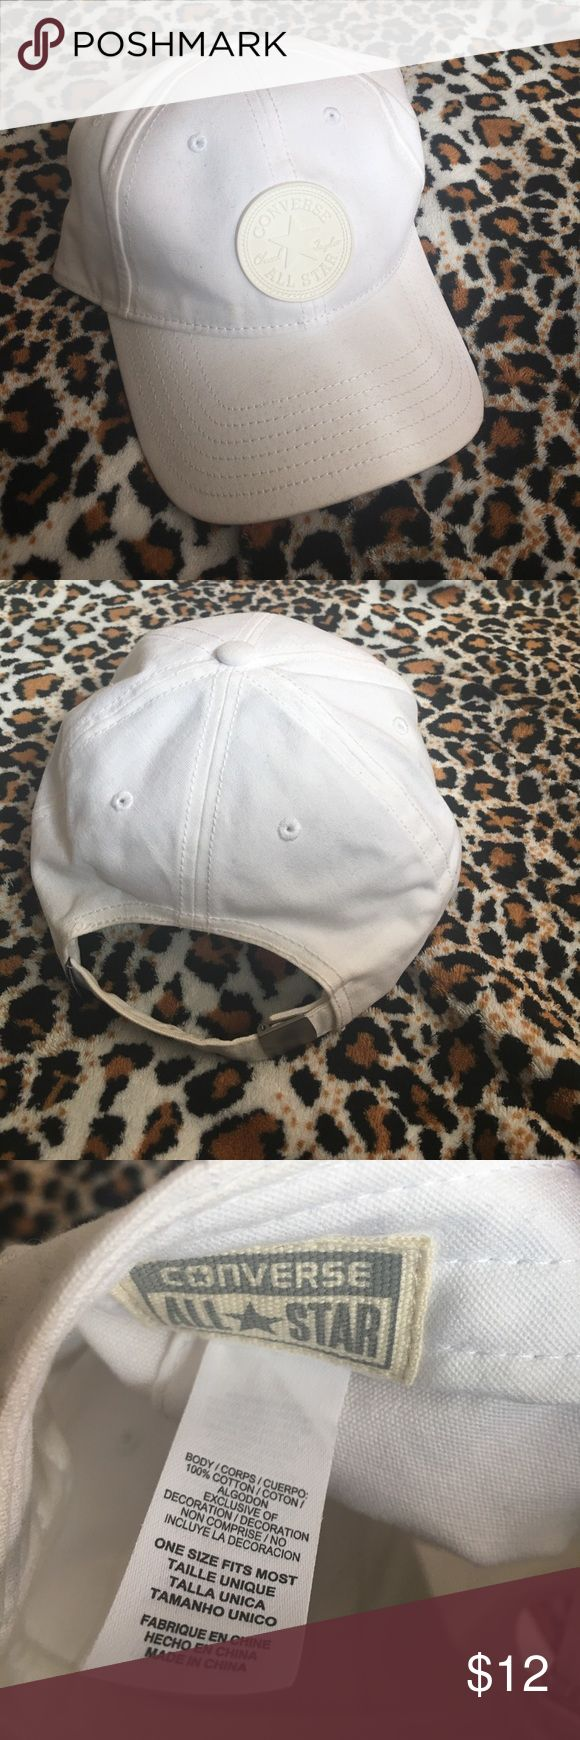 Converse All Star White Baseball Cap All White Chuck Taylor Converse cap only worn once! Apologize for the make up stain on the inside, hence the deep discount! Converse Accessories Hats